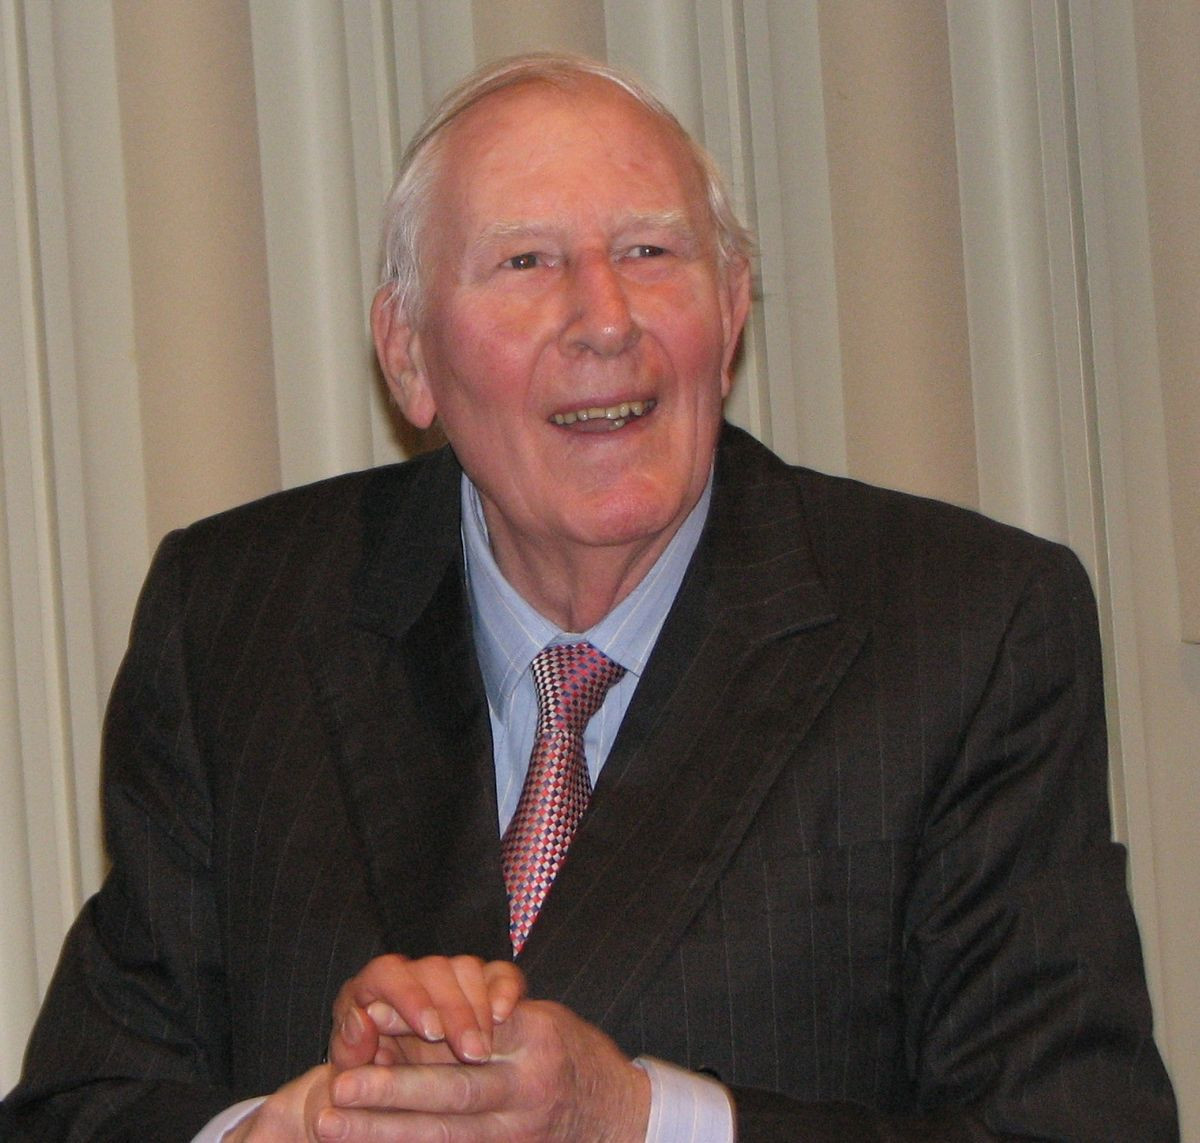 Tributes to Sir Roger Bannister, who has died at age 88